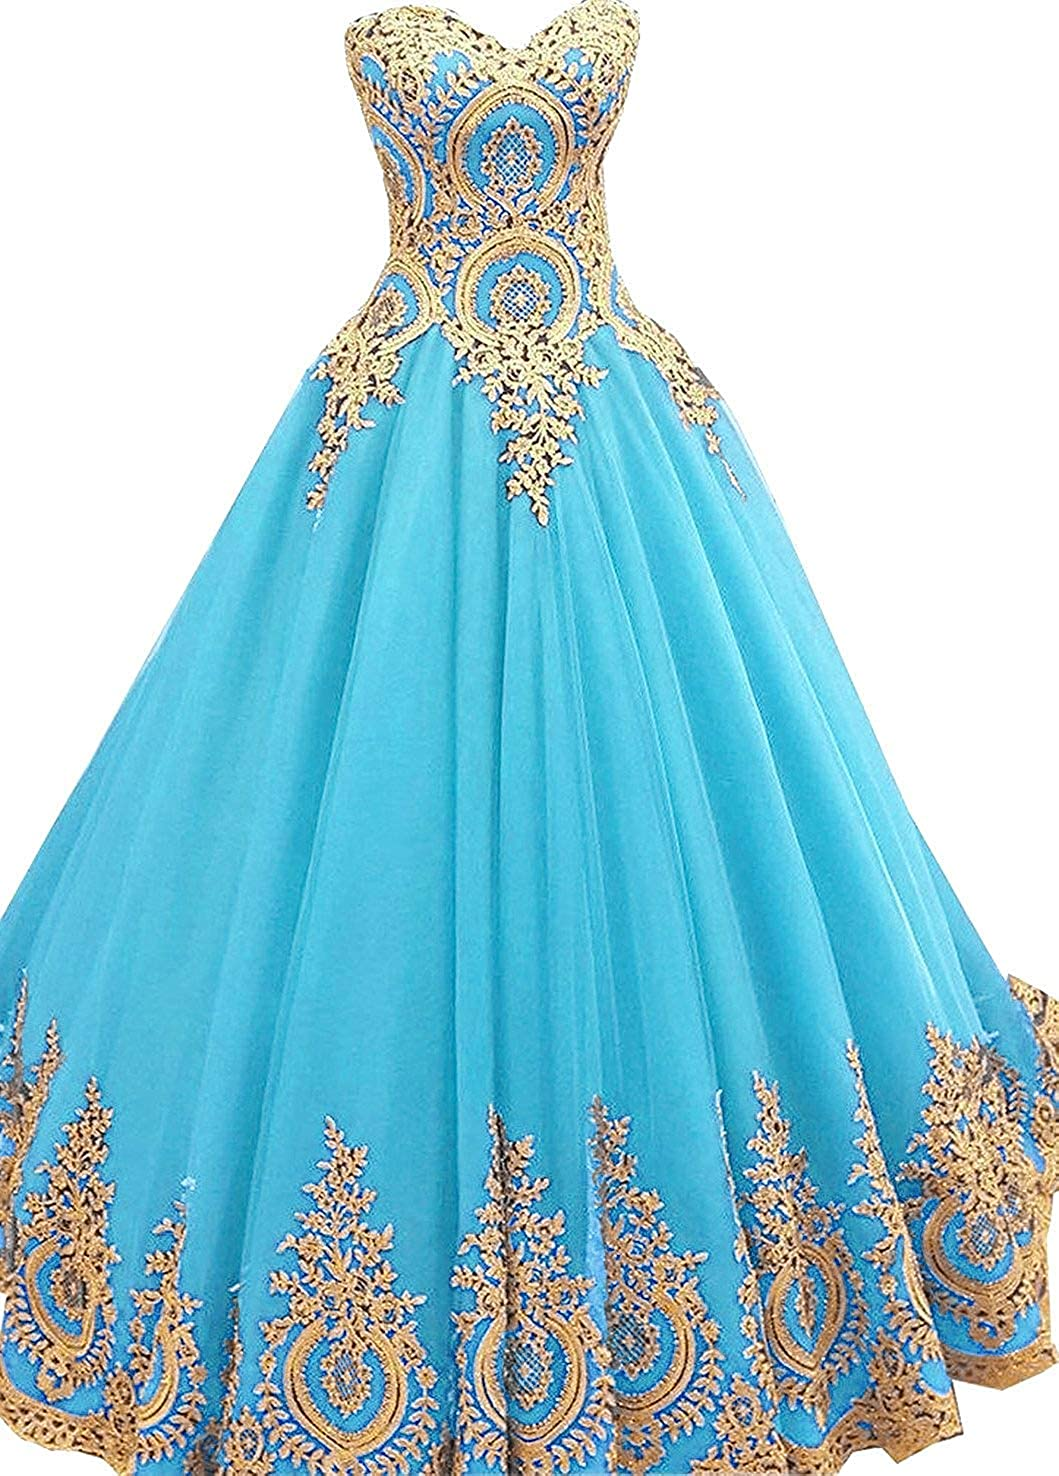 ChiChiDress Lace Prom Dress 2019 Off The Shoulder Quinceanera Ball Gown Party CC007